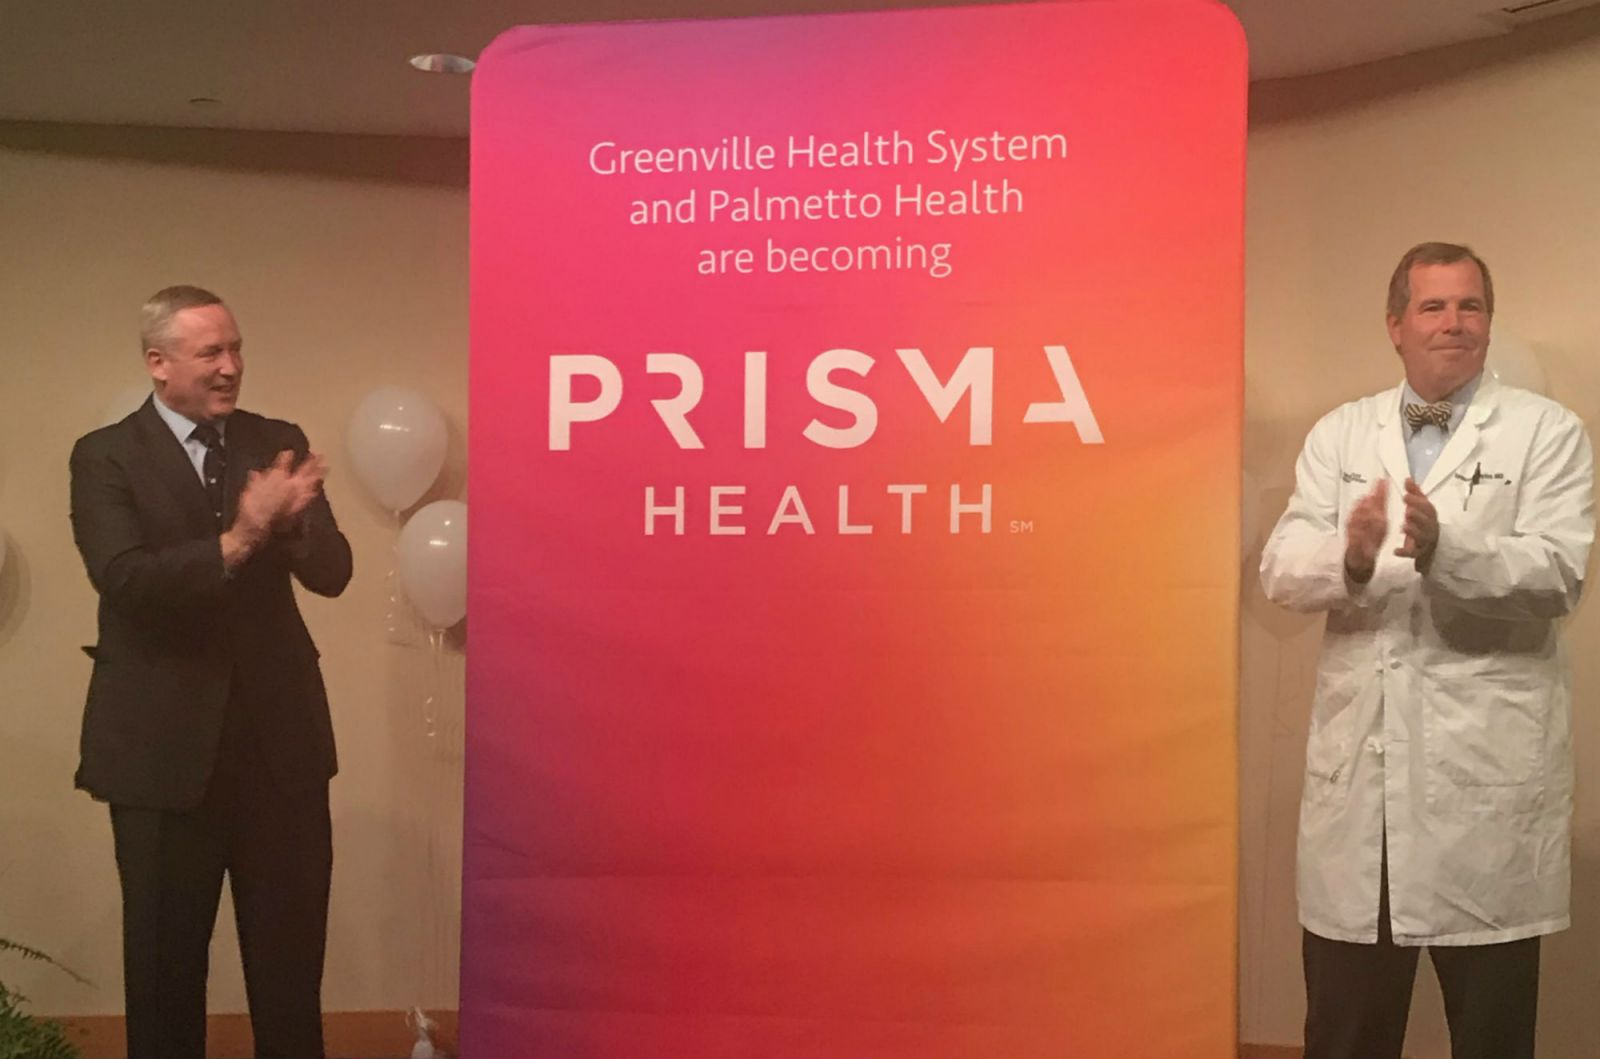 Prisma Health co-CEO Michael Riordan, left, and Dr. Spence Taylor, president of the Upstate affiliate of Prisma Health, unveil the company's new logo. (Photo/Teresa Cutlip)